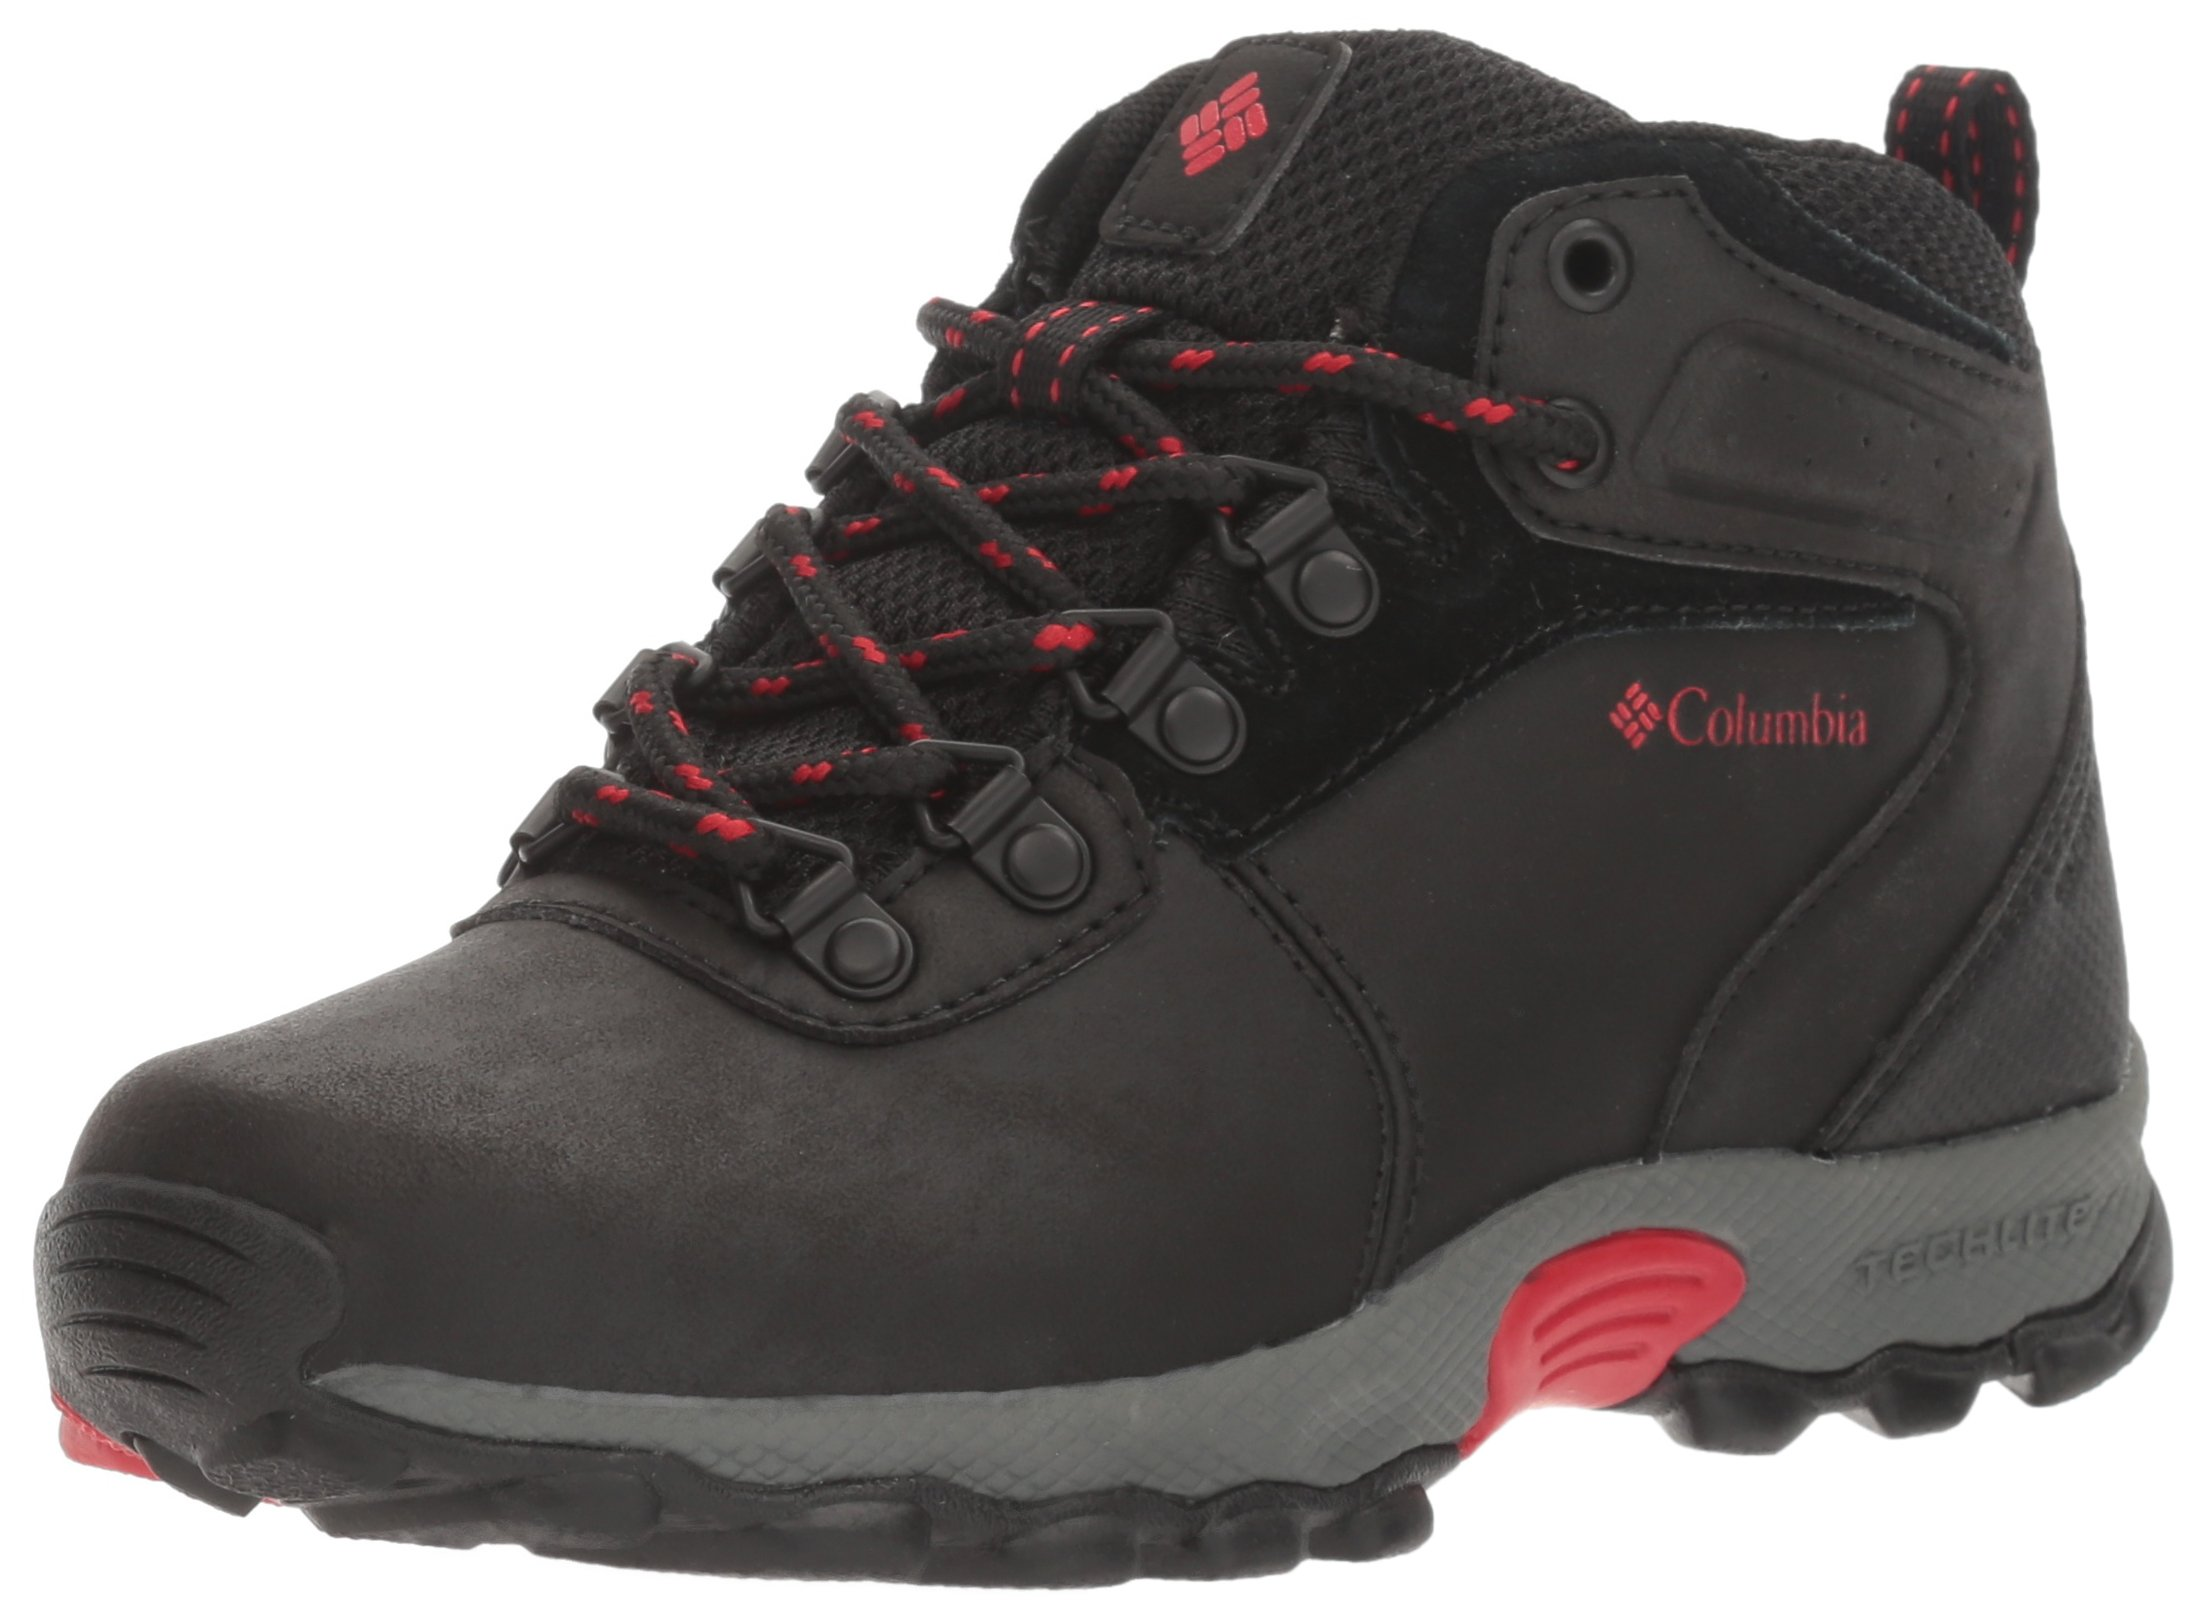 Columbia Unisex Youth Newton Ridge Hiking Shoe Black, Mountain red 5 Regular US Big Kid